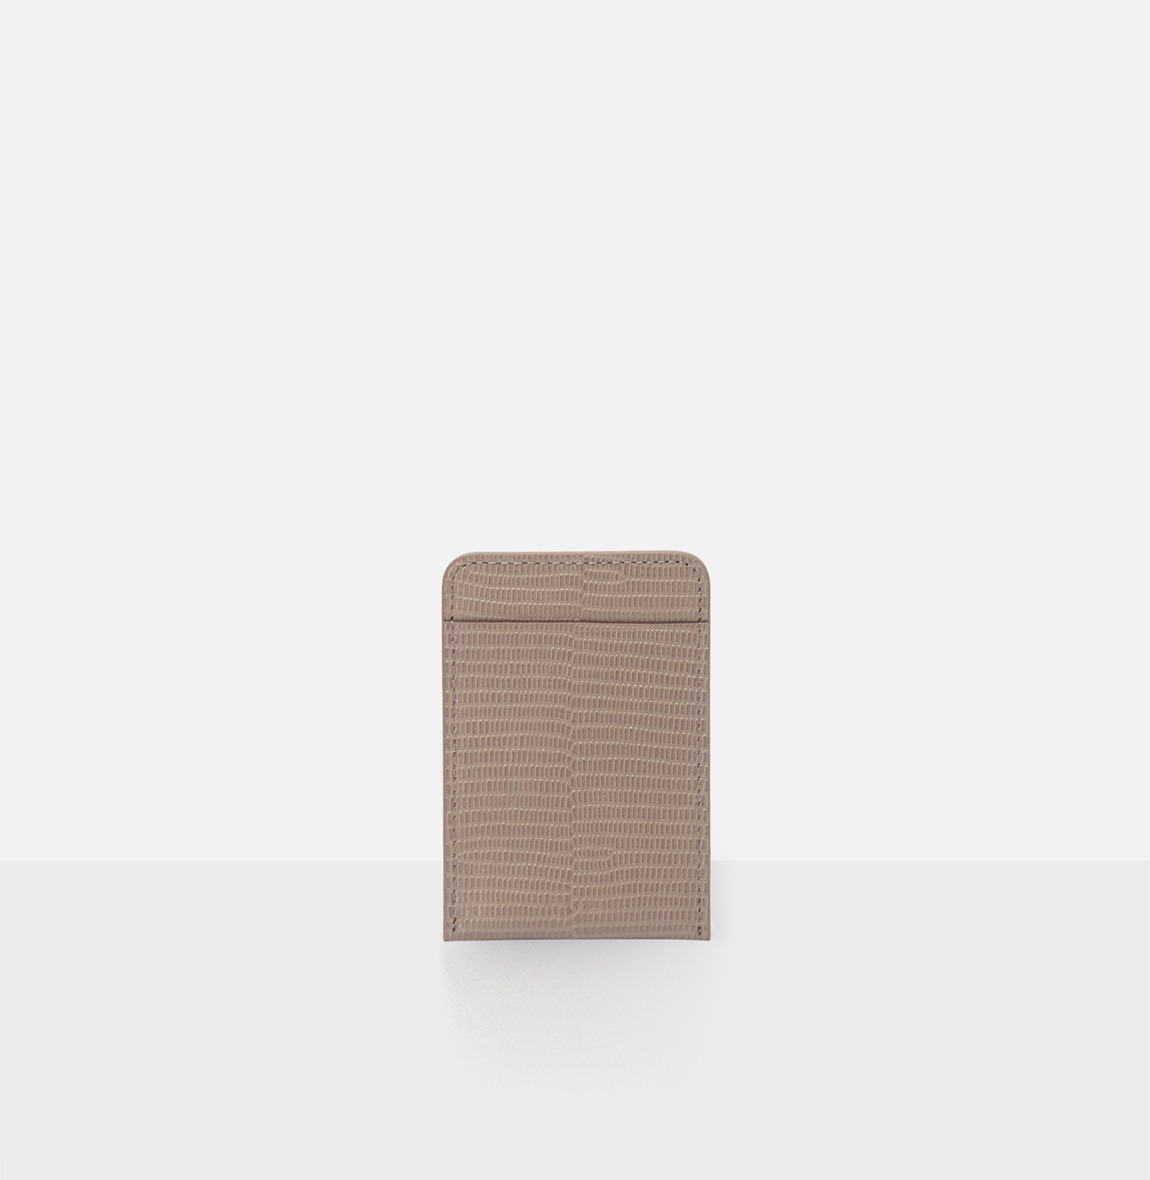 Basic card Holder Beige Lizard pattern